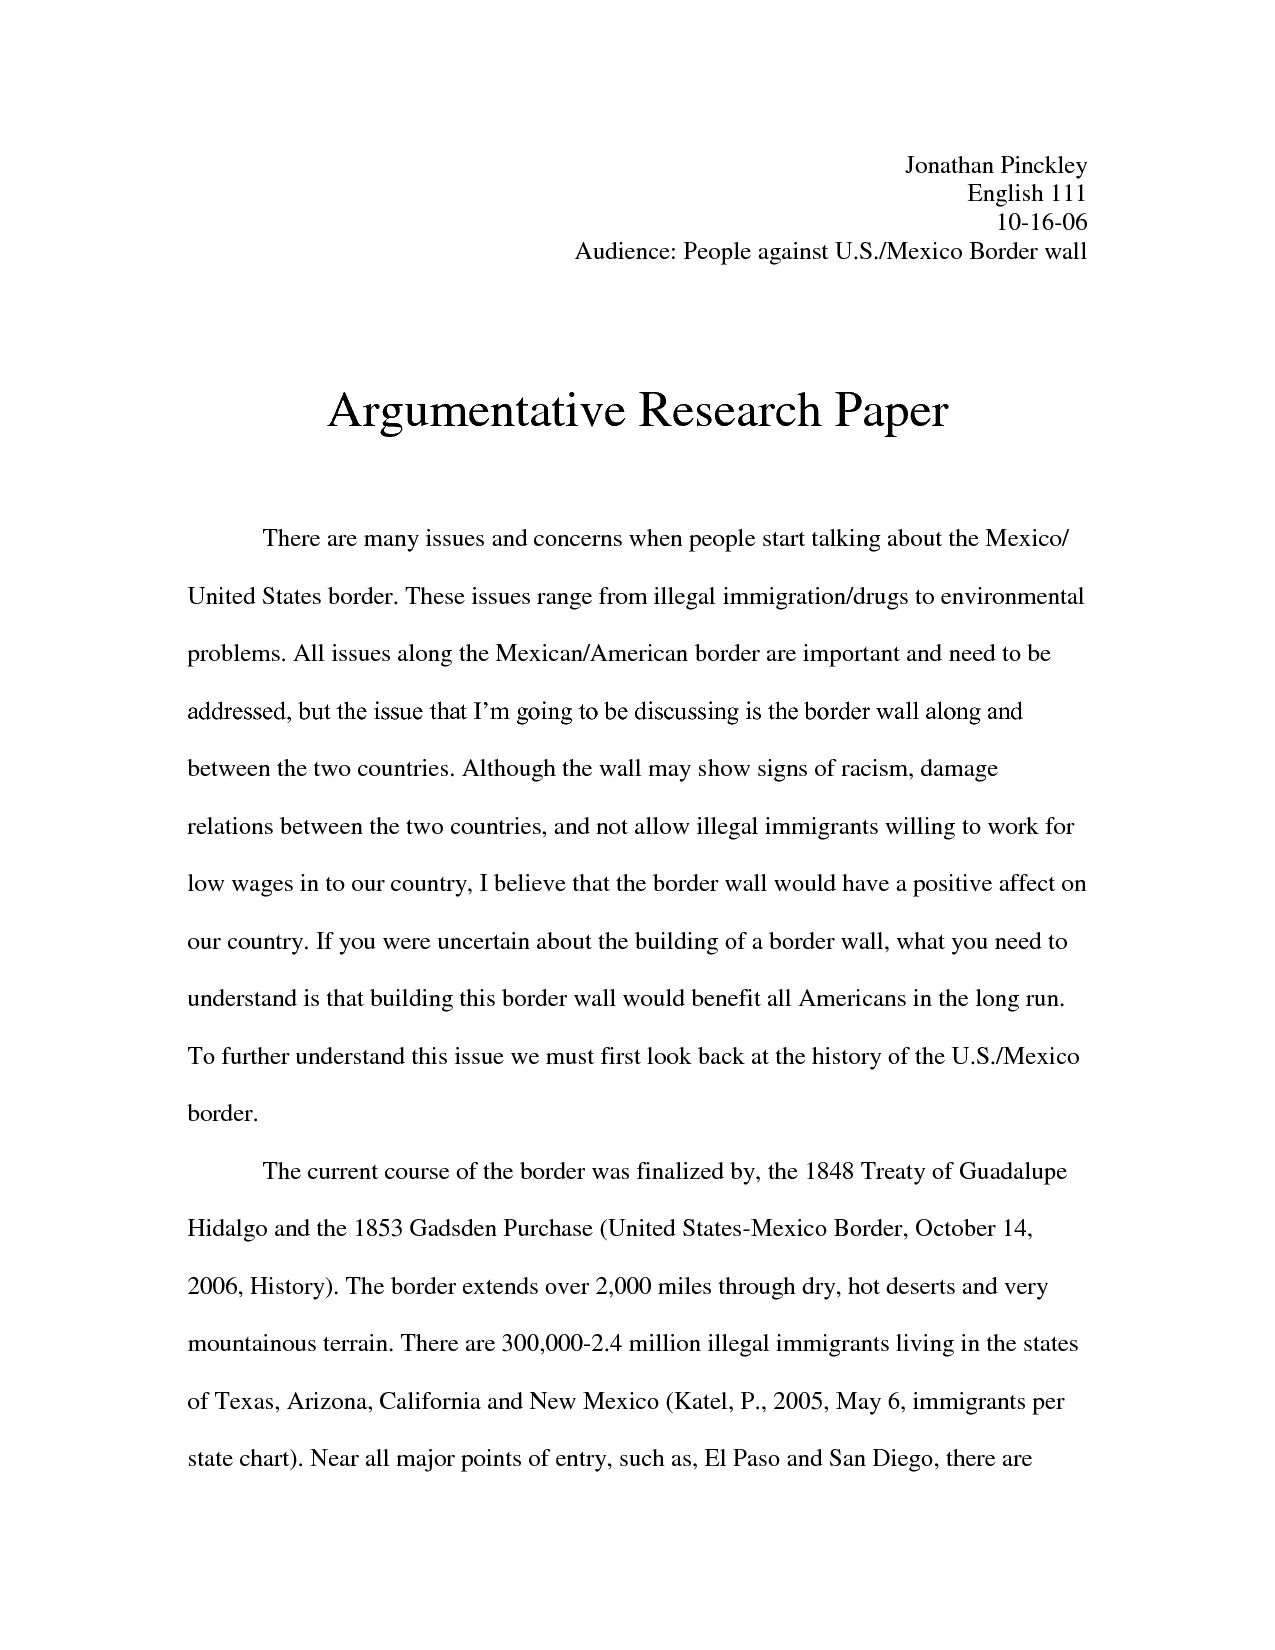 Research Based Essay Examples Hospi Noiseworks Co